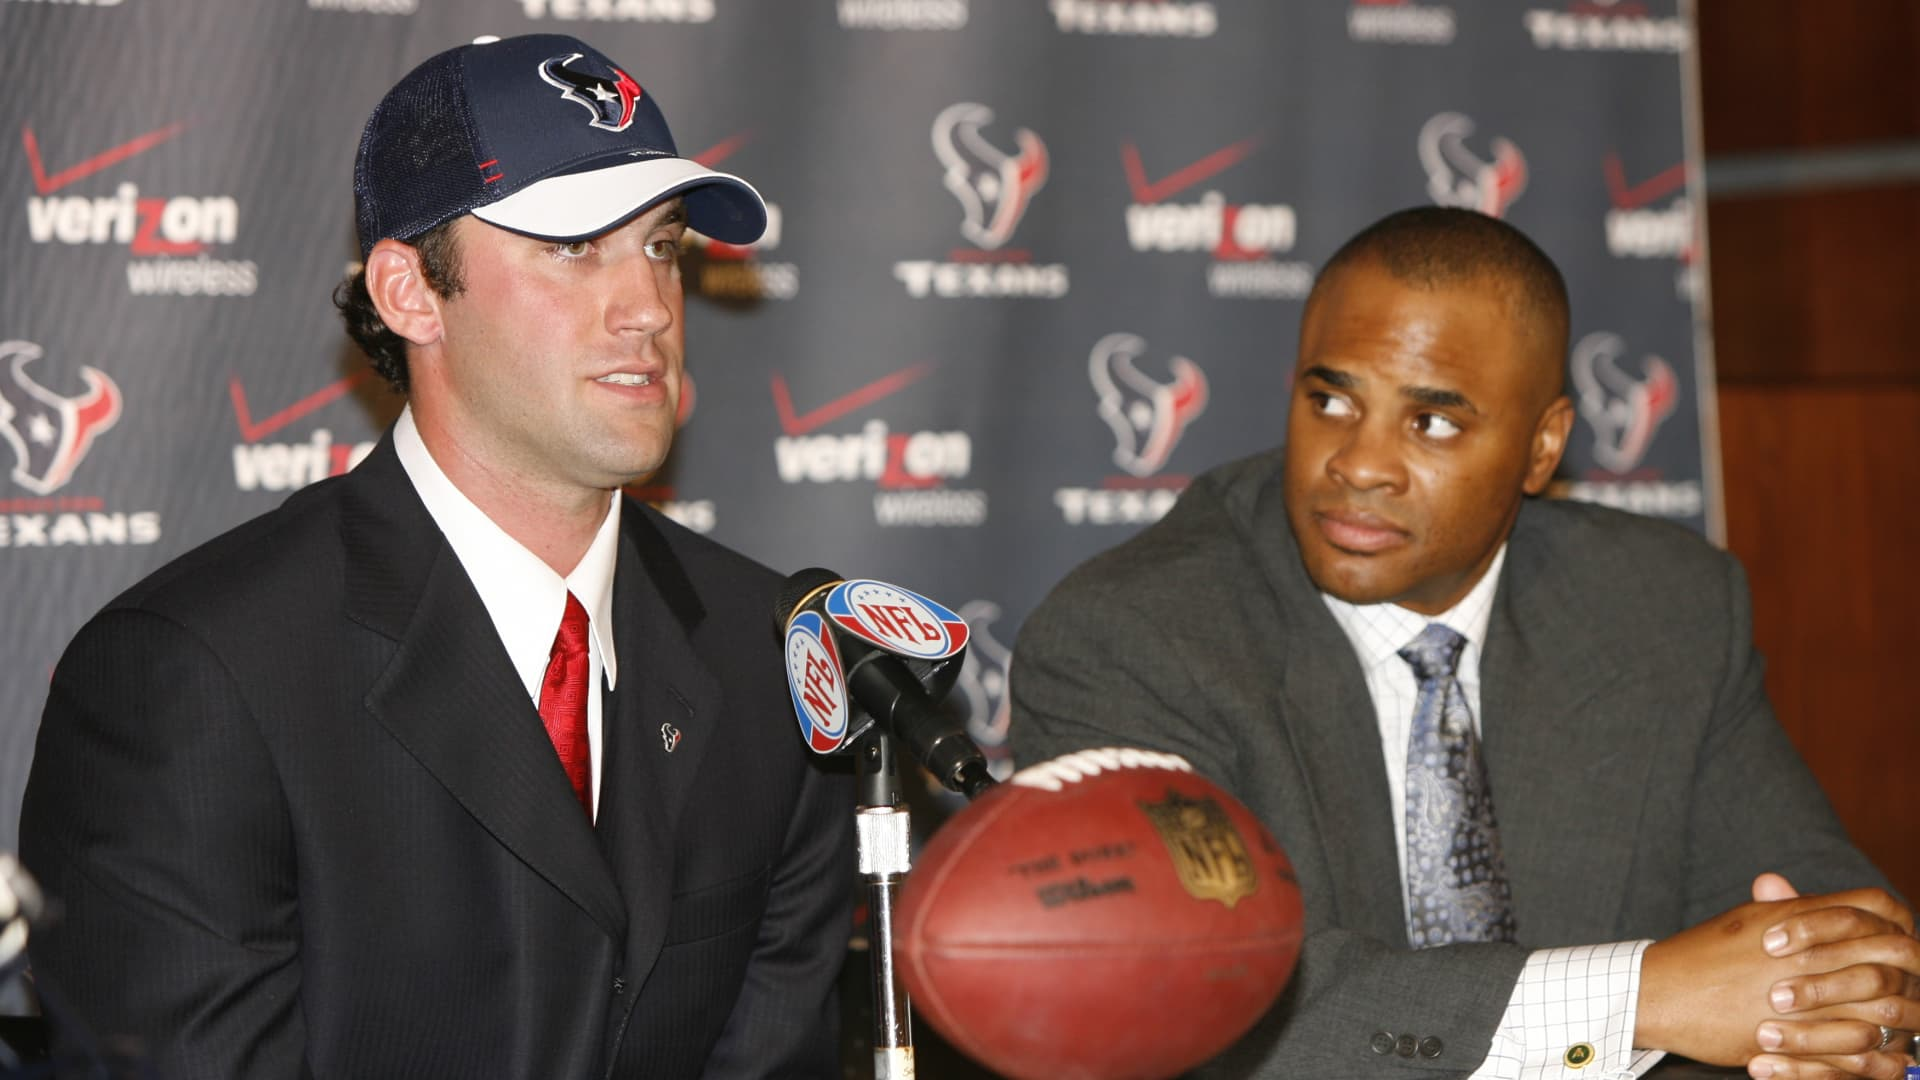 Houston Texans Matt Schaub (L) speaks to the media as Texans GM Rick Smith looks on during the press conference to introduce him as the Texans new starting quarterback after trading with the Atlanta Falcons on March 22, 2007 in Houston, Texas.